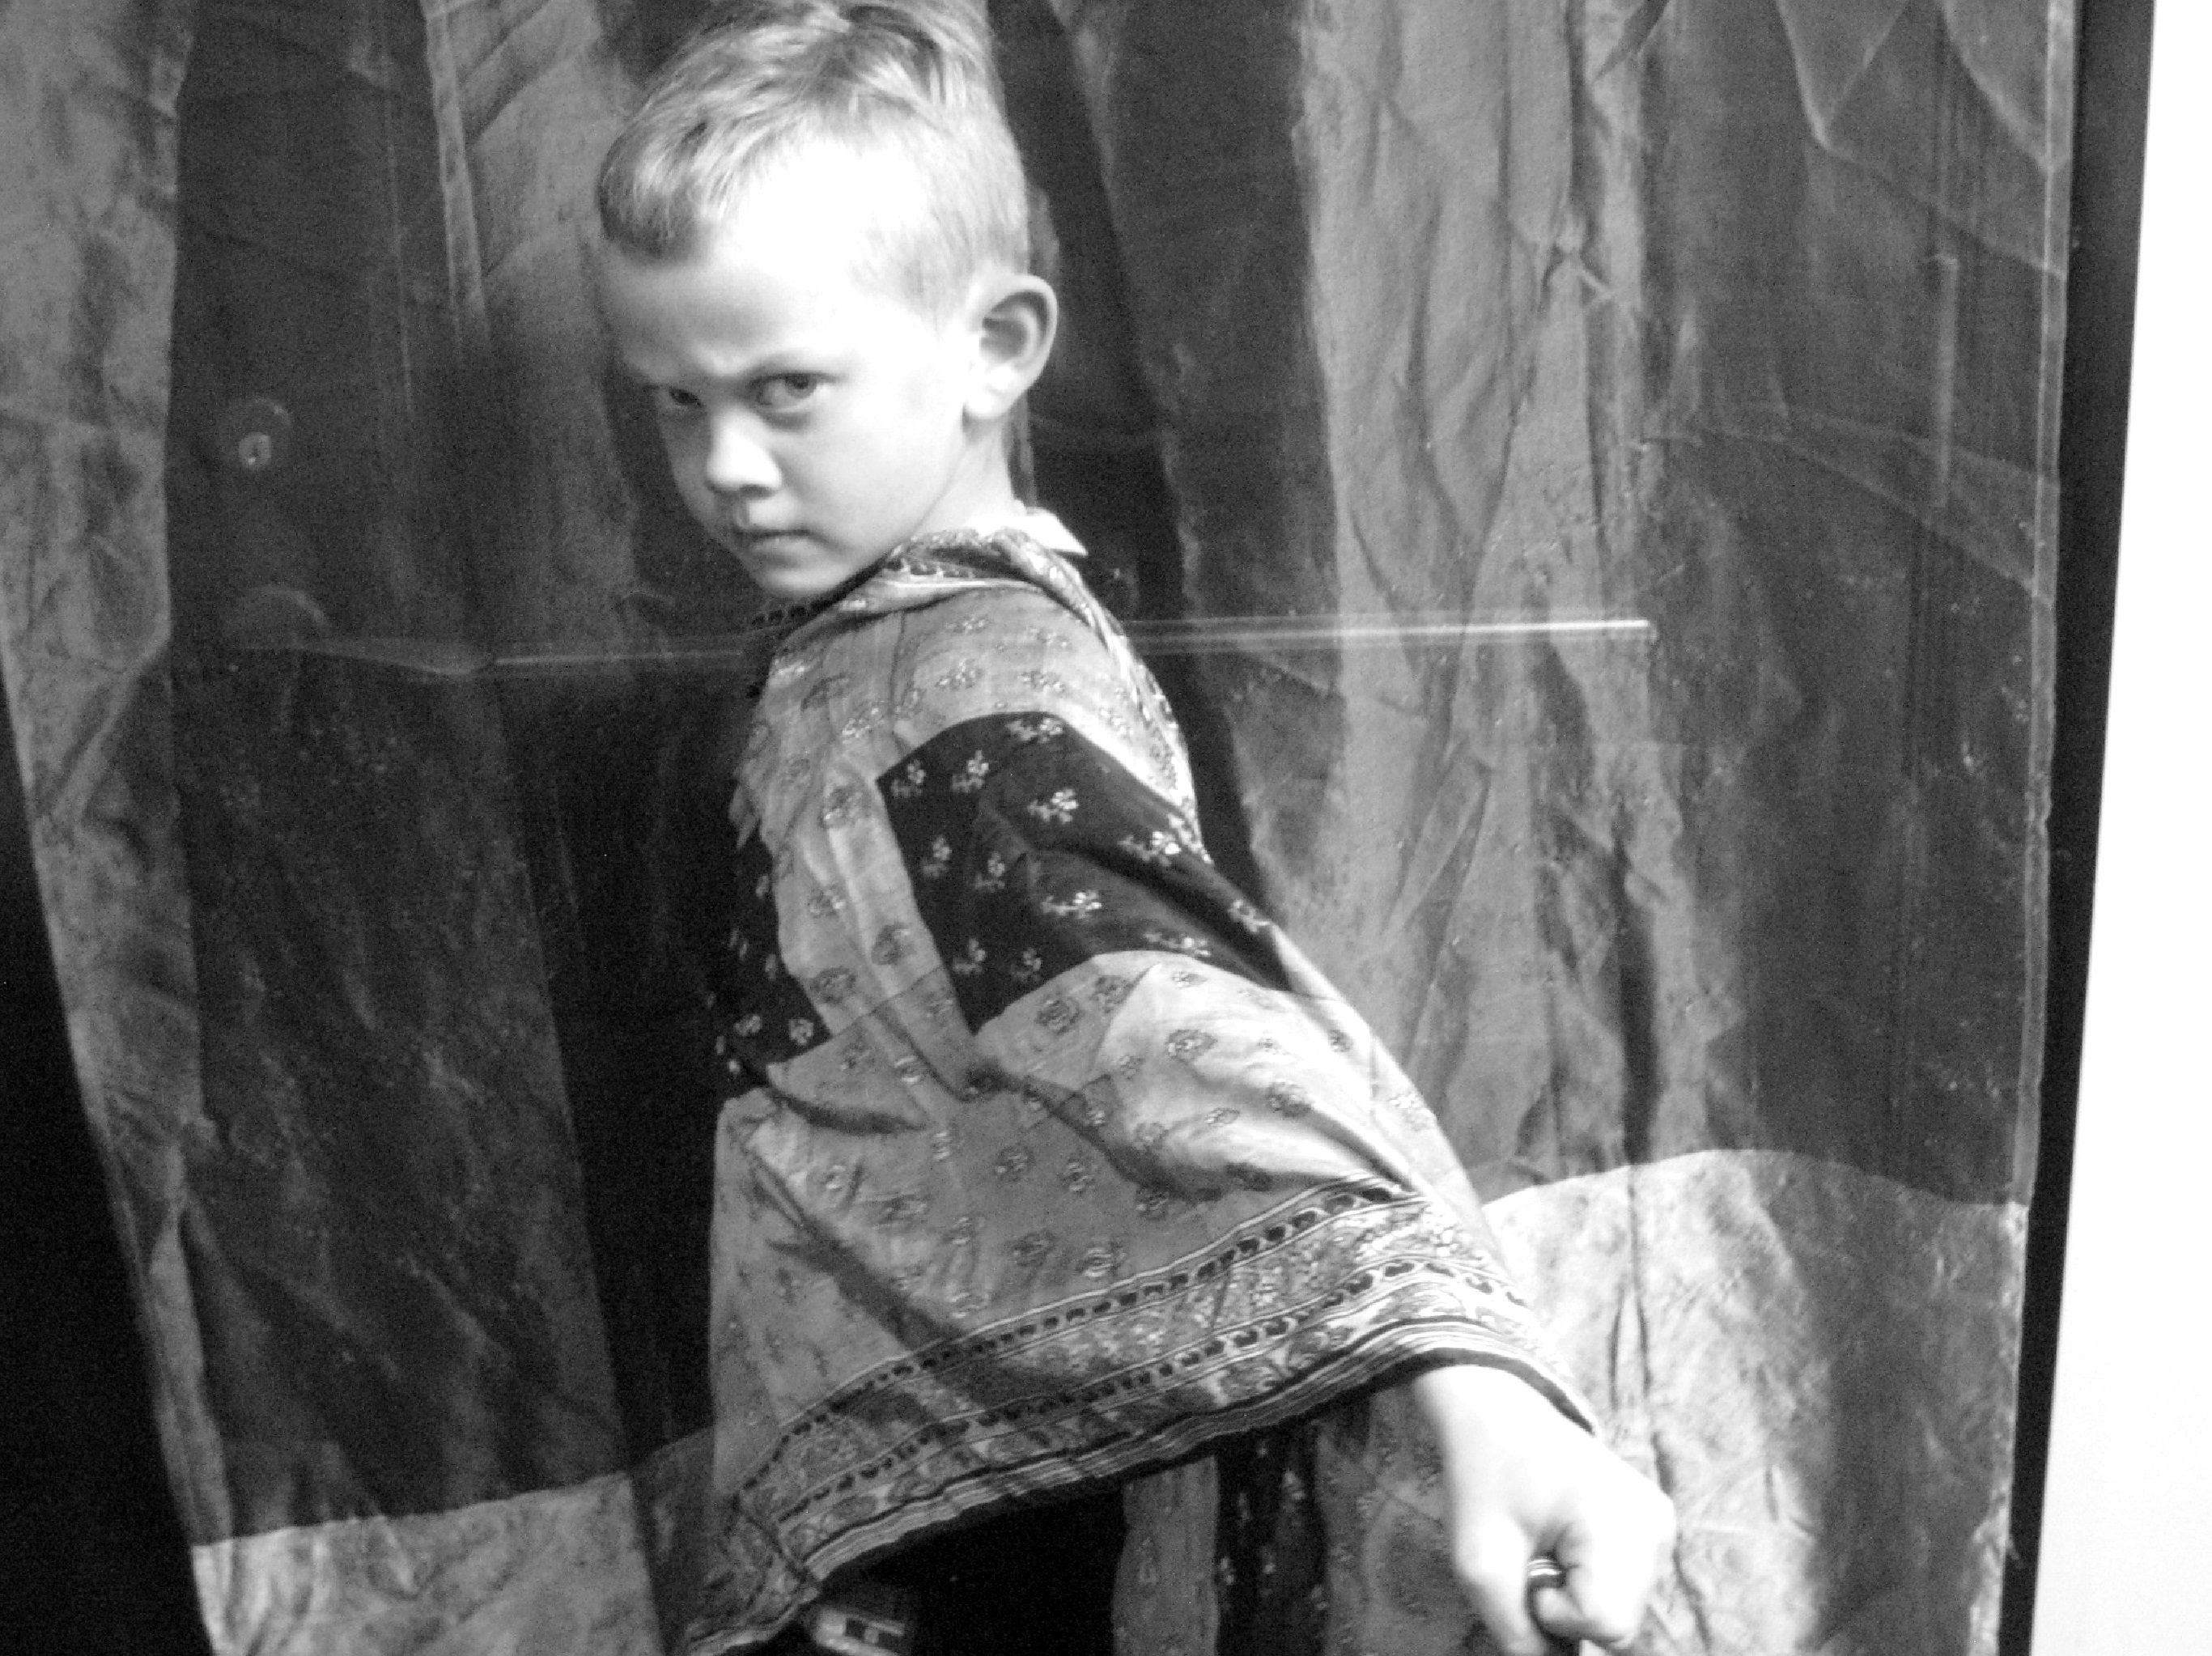 Boy posing in the style of silent movie